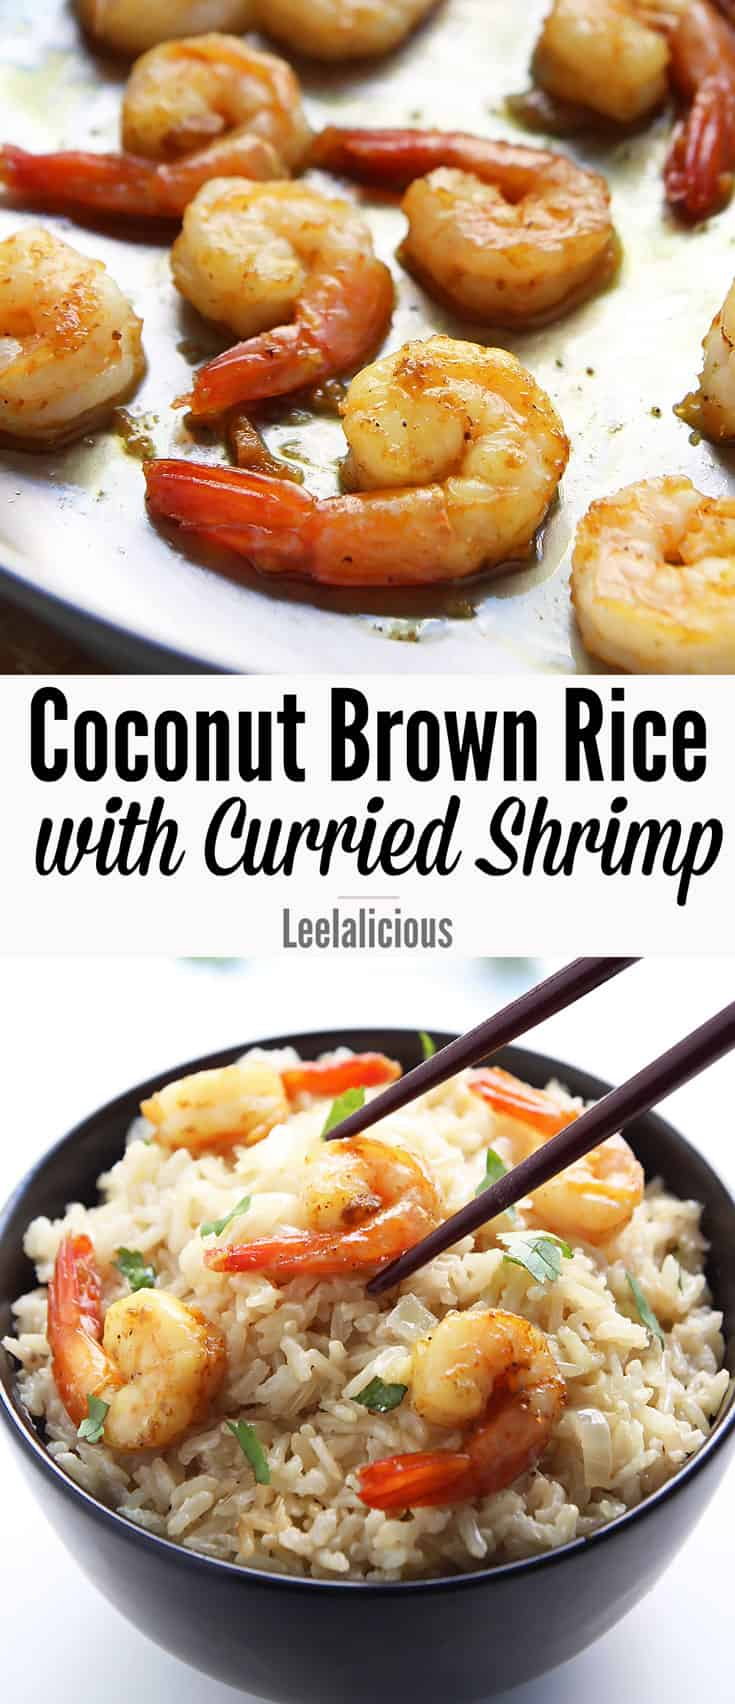 Creamy Coconut Brown Rice with Curried Shrimp is an easy, gluten free meal with tropical flavors. This delicious recipe requires minimal hands-on cooking time thanks to the use of a rice cooker.